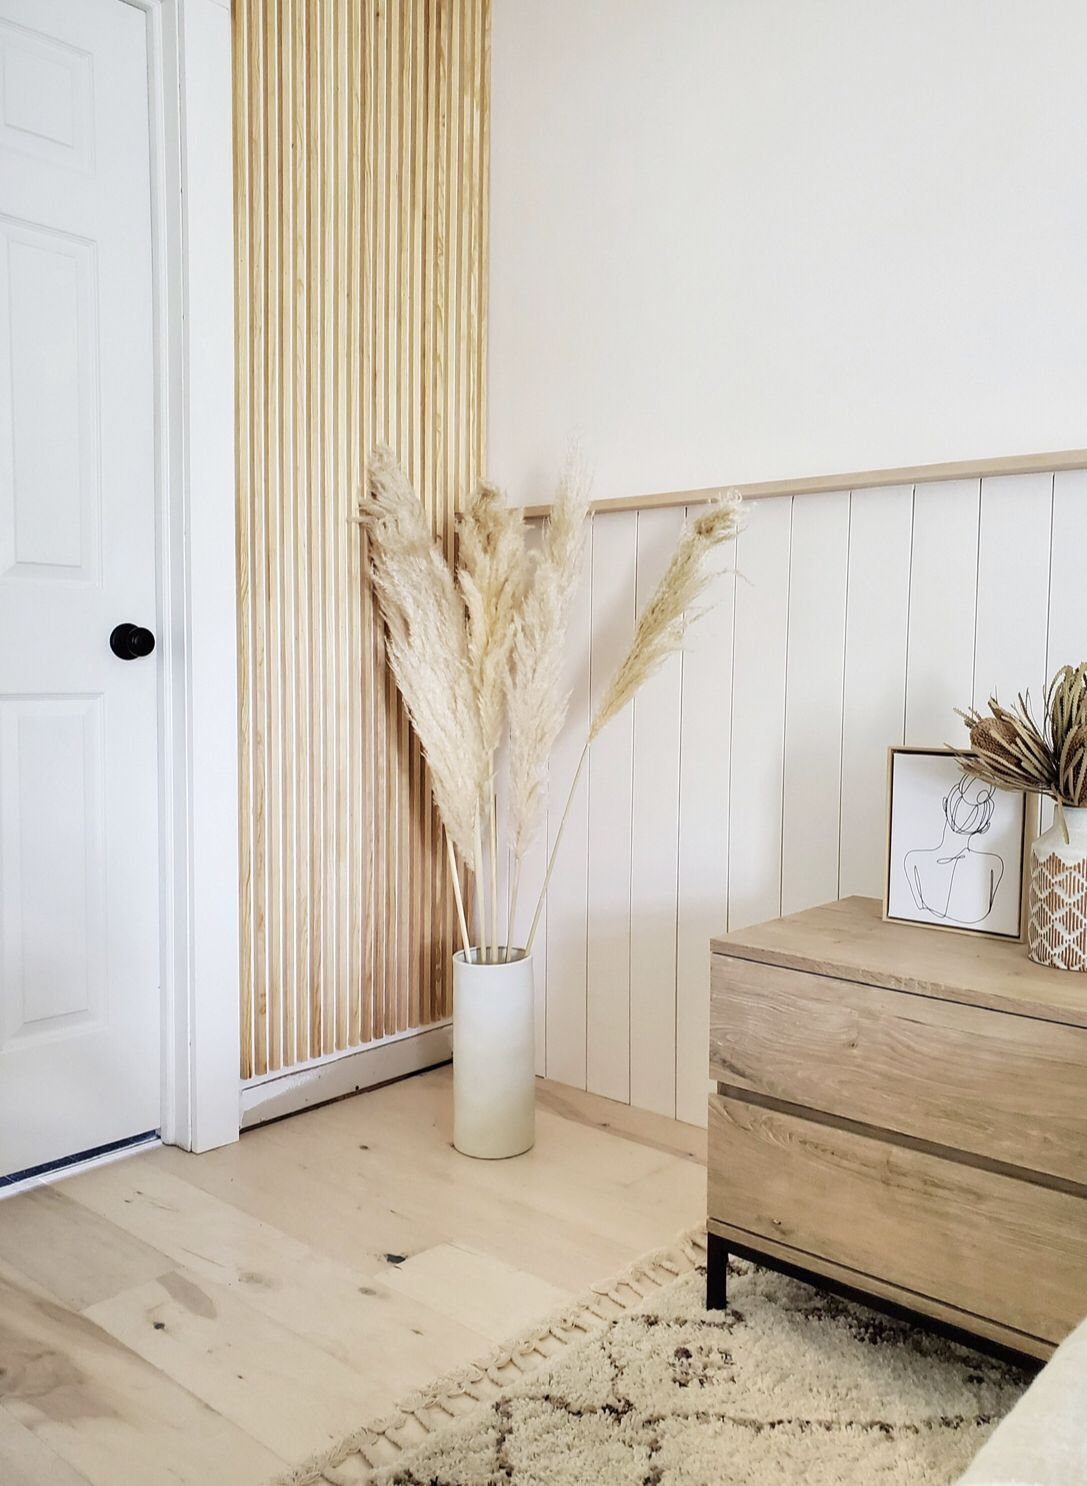 Diy wood slat accent wall with ledge over shiplap wood